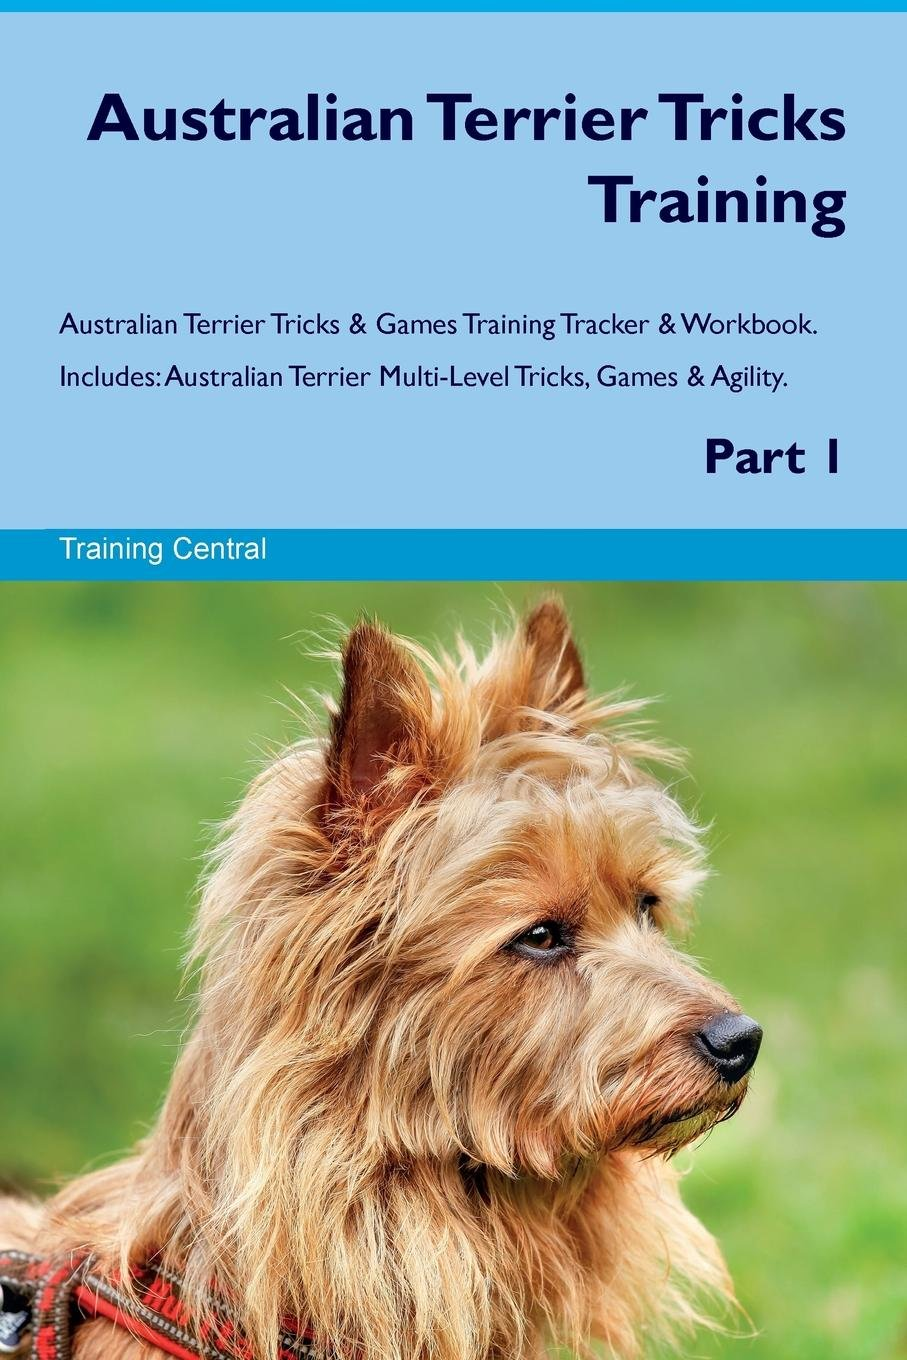 Australian Terrier Tricks Training Australian Terrier Tricks & Games Training Tracker & Workbook.  Includes: Australian Terrier Multi-Level Tricks, Games & Agility. Part 1